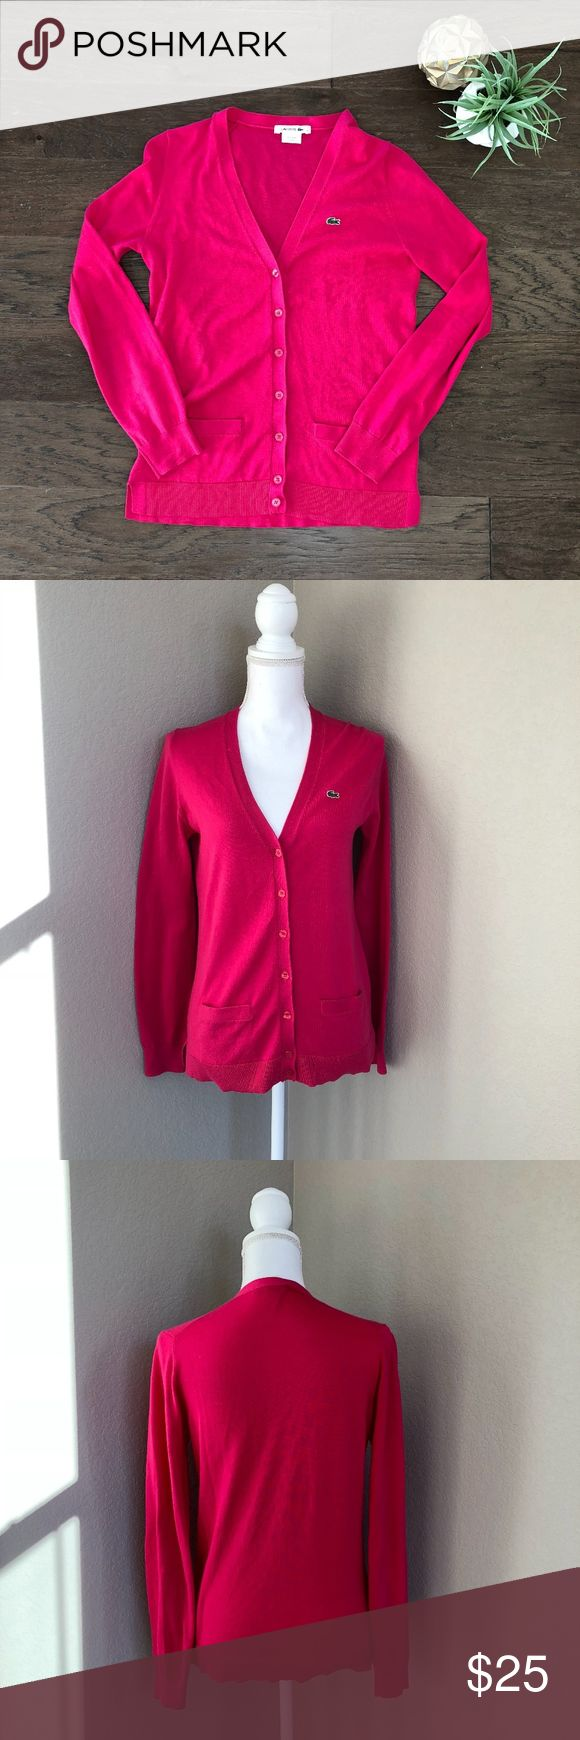 """Lacoste Pink Cardigan EXCELLENT Condition Size 34 Lacoste Pink Cardigan EXCELLENT Condition Size 34. 100% Cotton. Offers welcome! Lacoste sizing equates a 34 to an XS but I think that this could easily fit a small. Measurements pictured and provided below:  Style #AF6520 Length: 24.5"""" Bust: 16.5"""" Lacoste Sweaters Cardigans"""